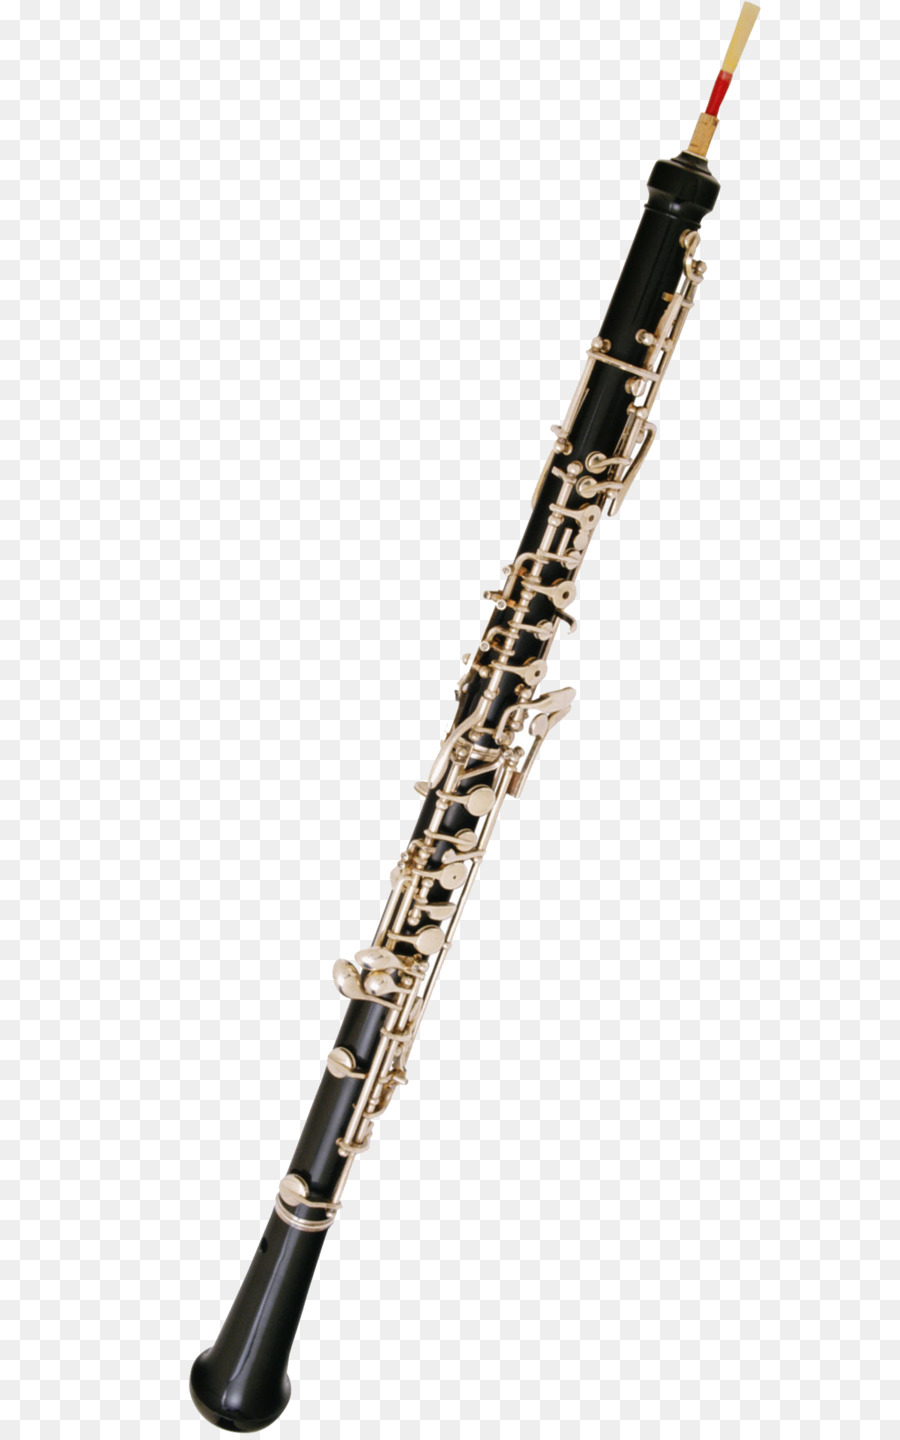 14 cliparts for free. Download Clarinet clipart watercolor and use.